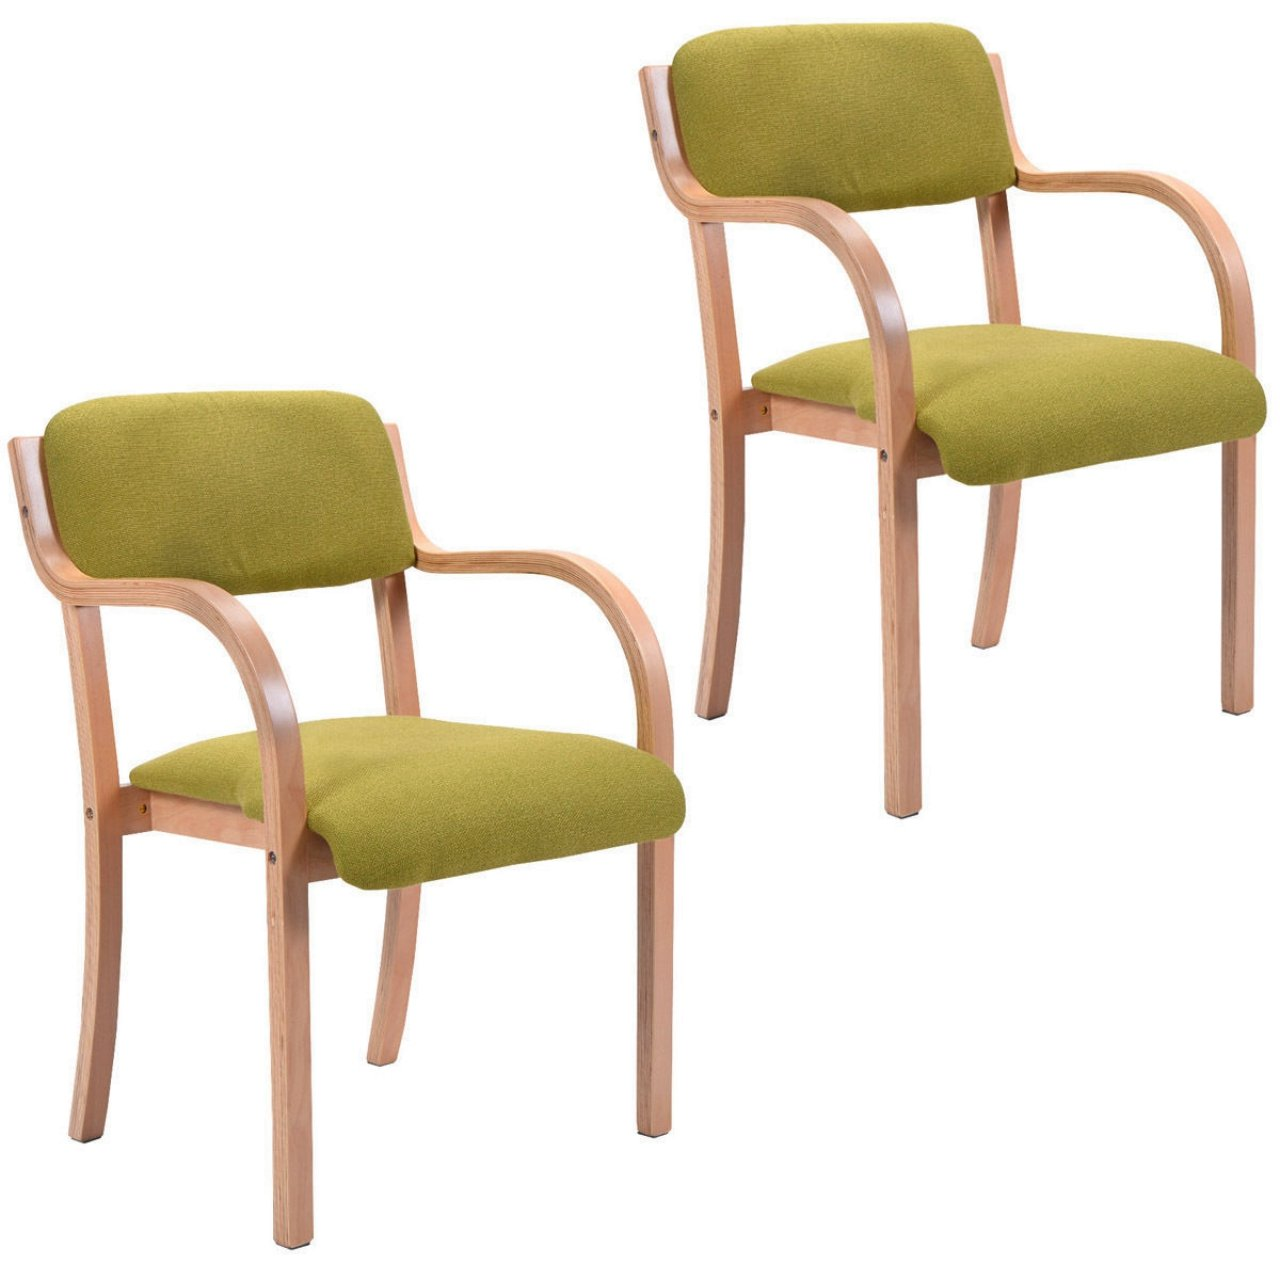 New Set of 2 Bentwood Arm Dining Chairs Accent Upholstered Home Room Decor Furniture/ Green #862